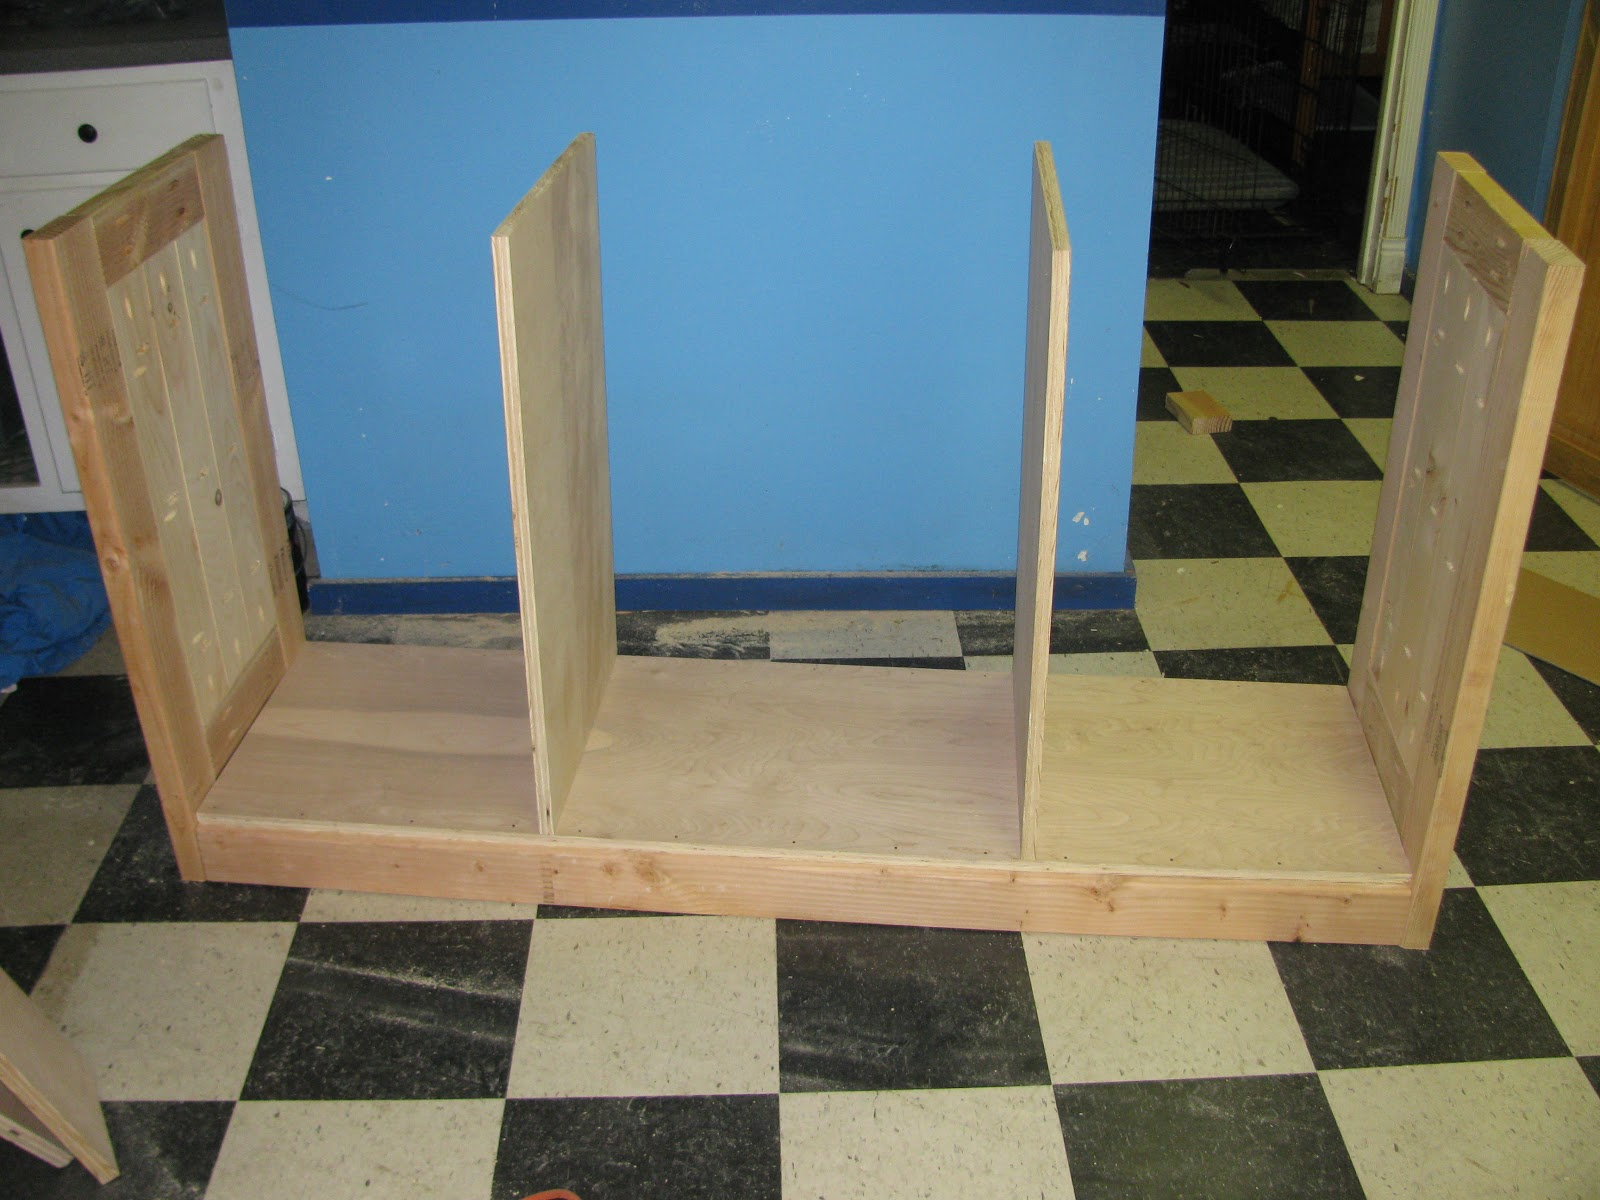 ... DIY Tv Stand Plans Ana White Download train table plans ho | woodideas